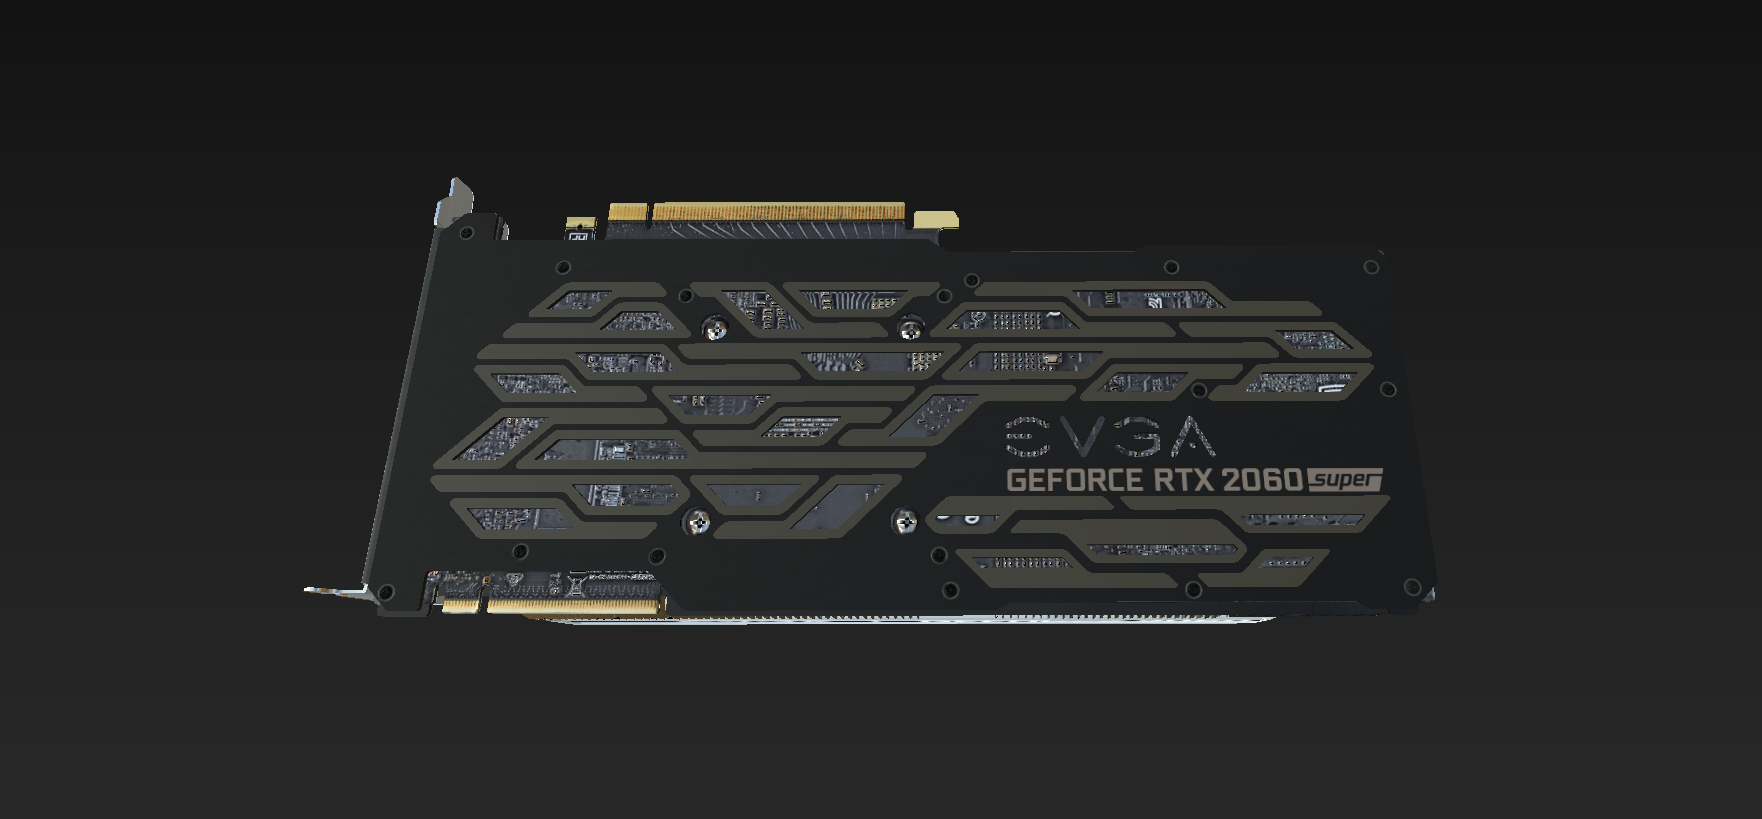 EVGA_GeForce_RTX_2060_SuperXC_Black_Gami